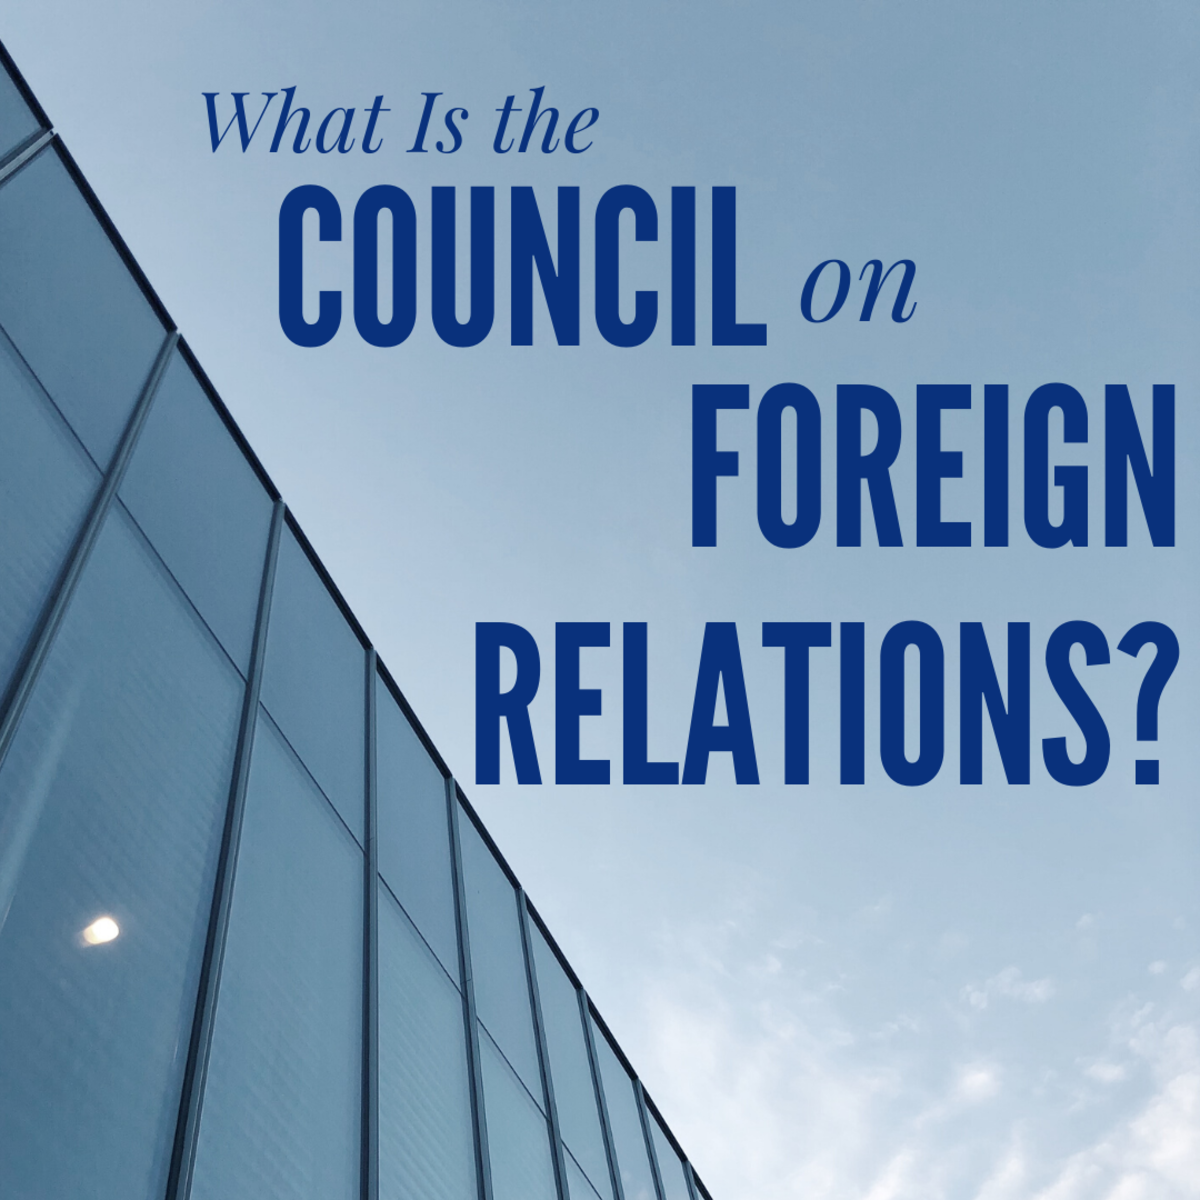 The Council on Foreign Relations: Theories and Controversy